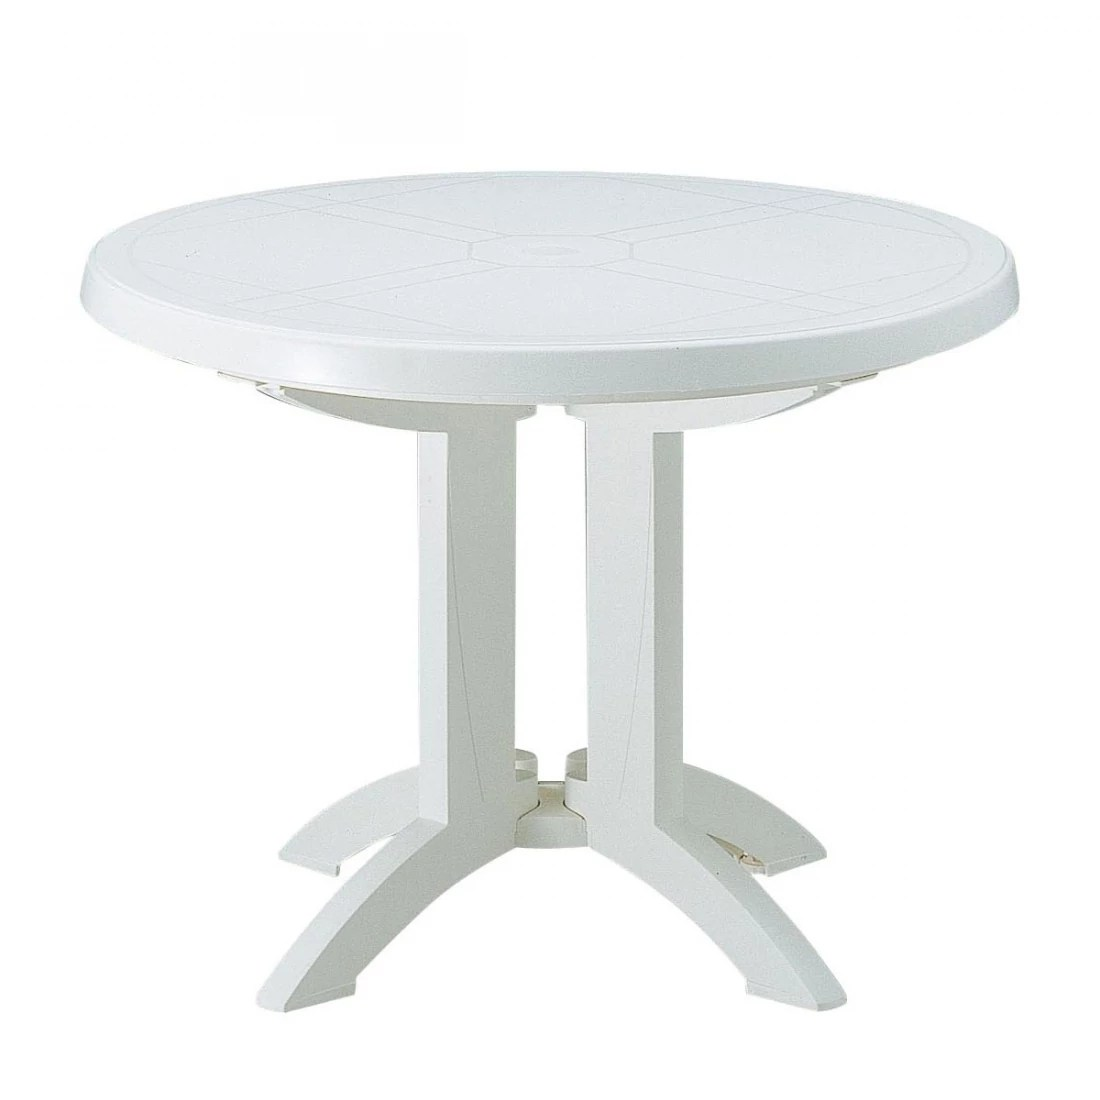 Table Ronde Jardin Habitat Table Ronde De Jardin Vega Grosfillex